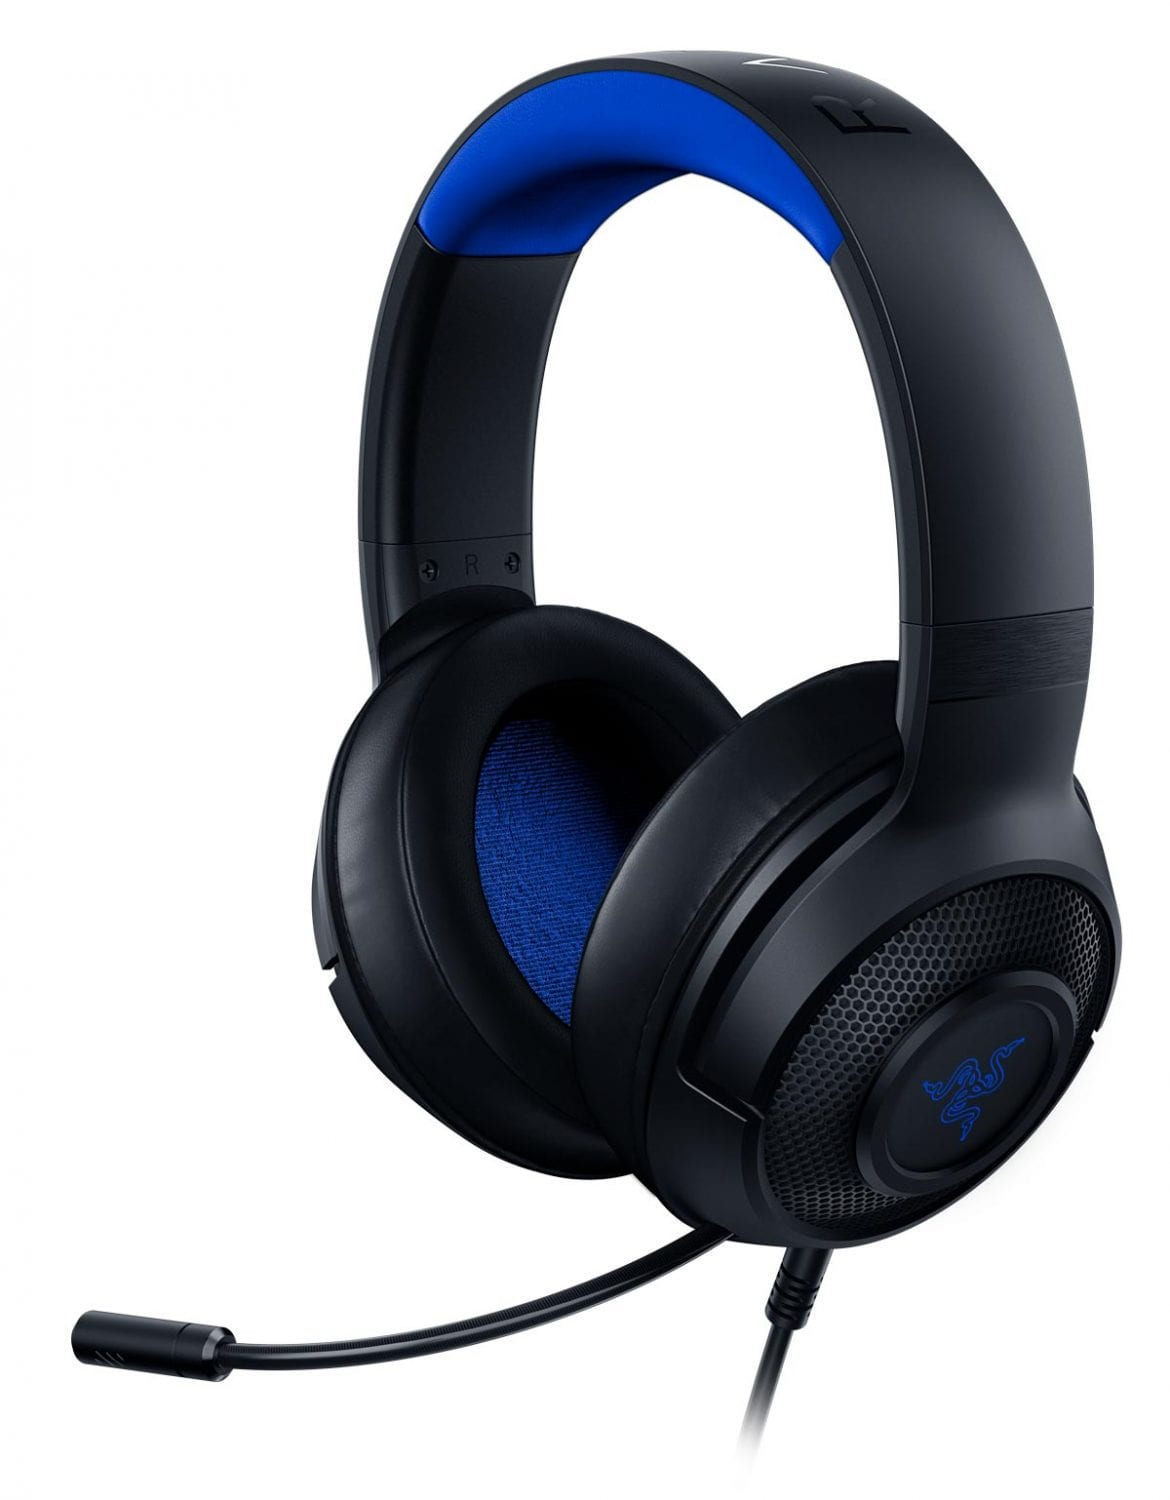 Razer Kraken X for Console ultra lightweight gaming headset